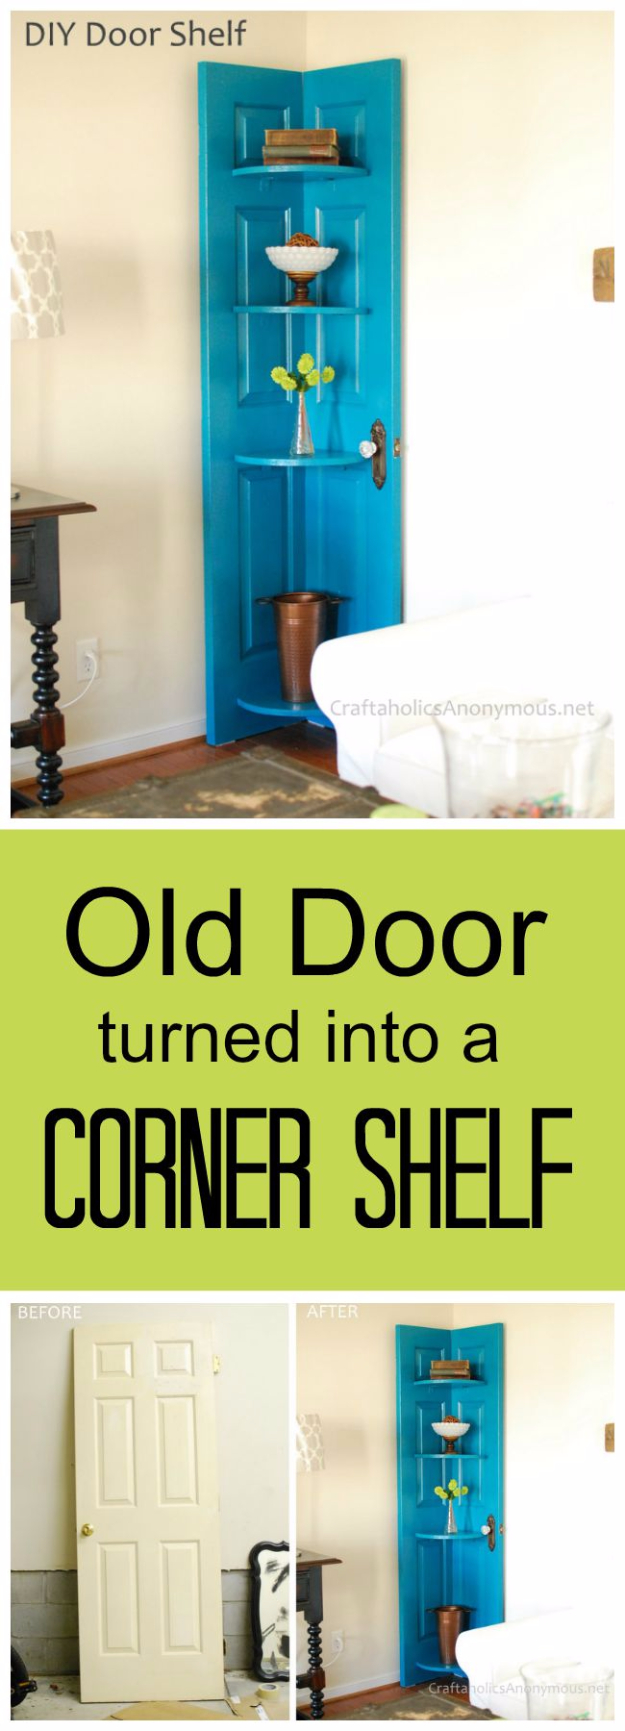 DIY Shelves and Do It Yourself Shelving Ideas - DIY Corner Door Shelf - Easy Step by Step Shelf Projects for Bedroom, Bathroom, Closet, Wall, Kitchen and Apartment. Floating Units, Rustic Pallet Looks and Simple Storage Plans #diy #diydecor #homeimprovement #shelves